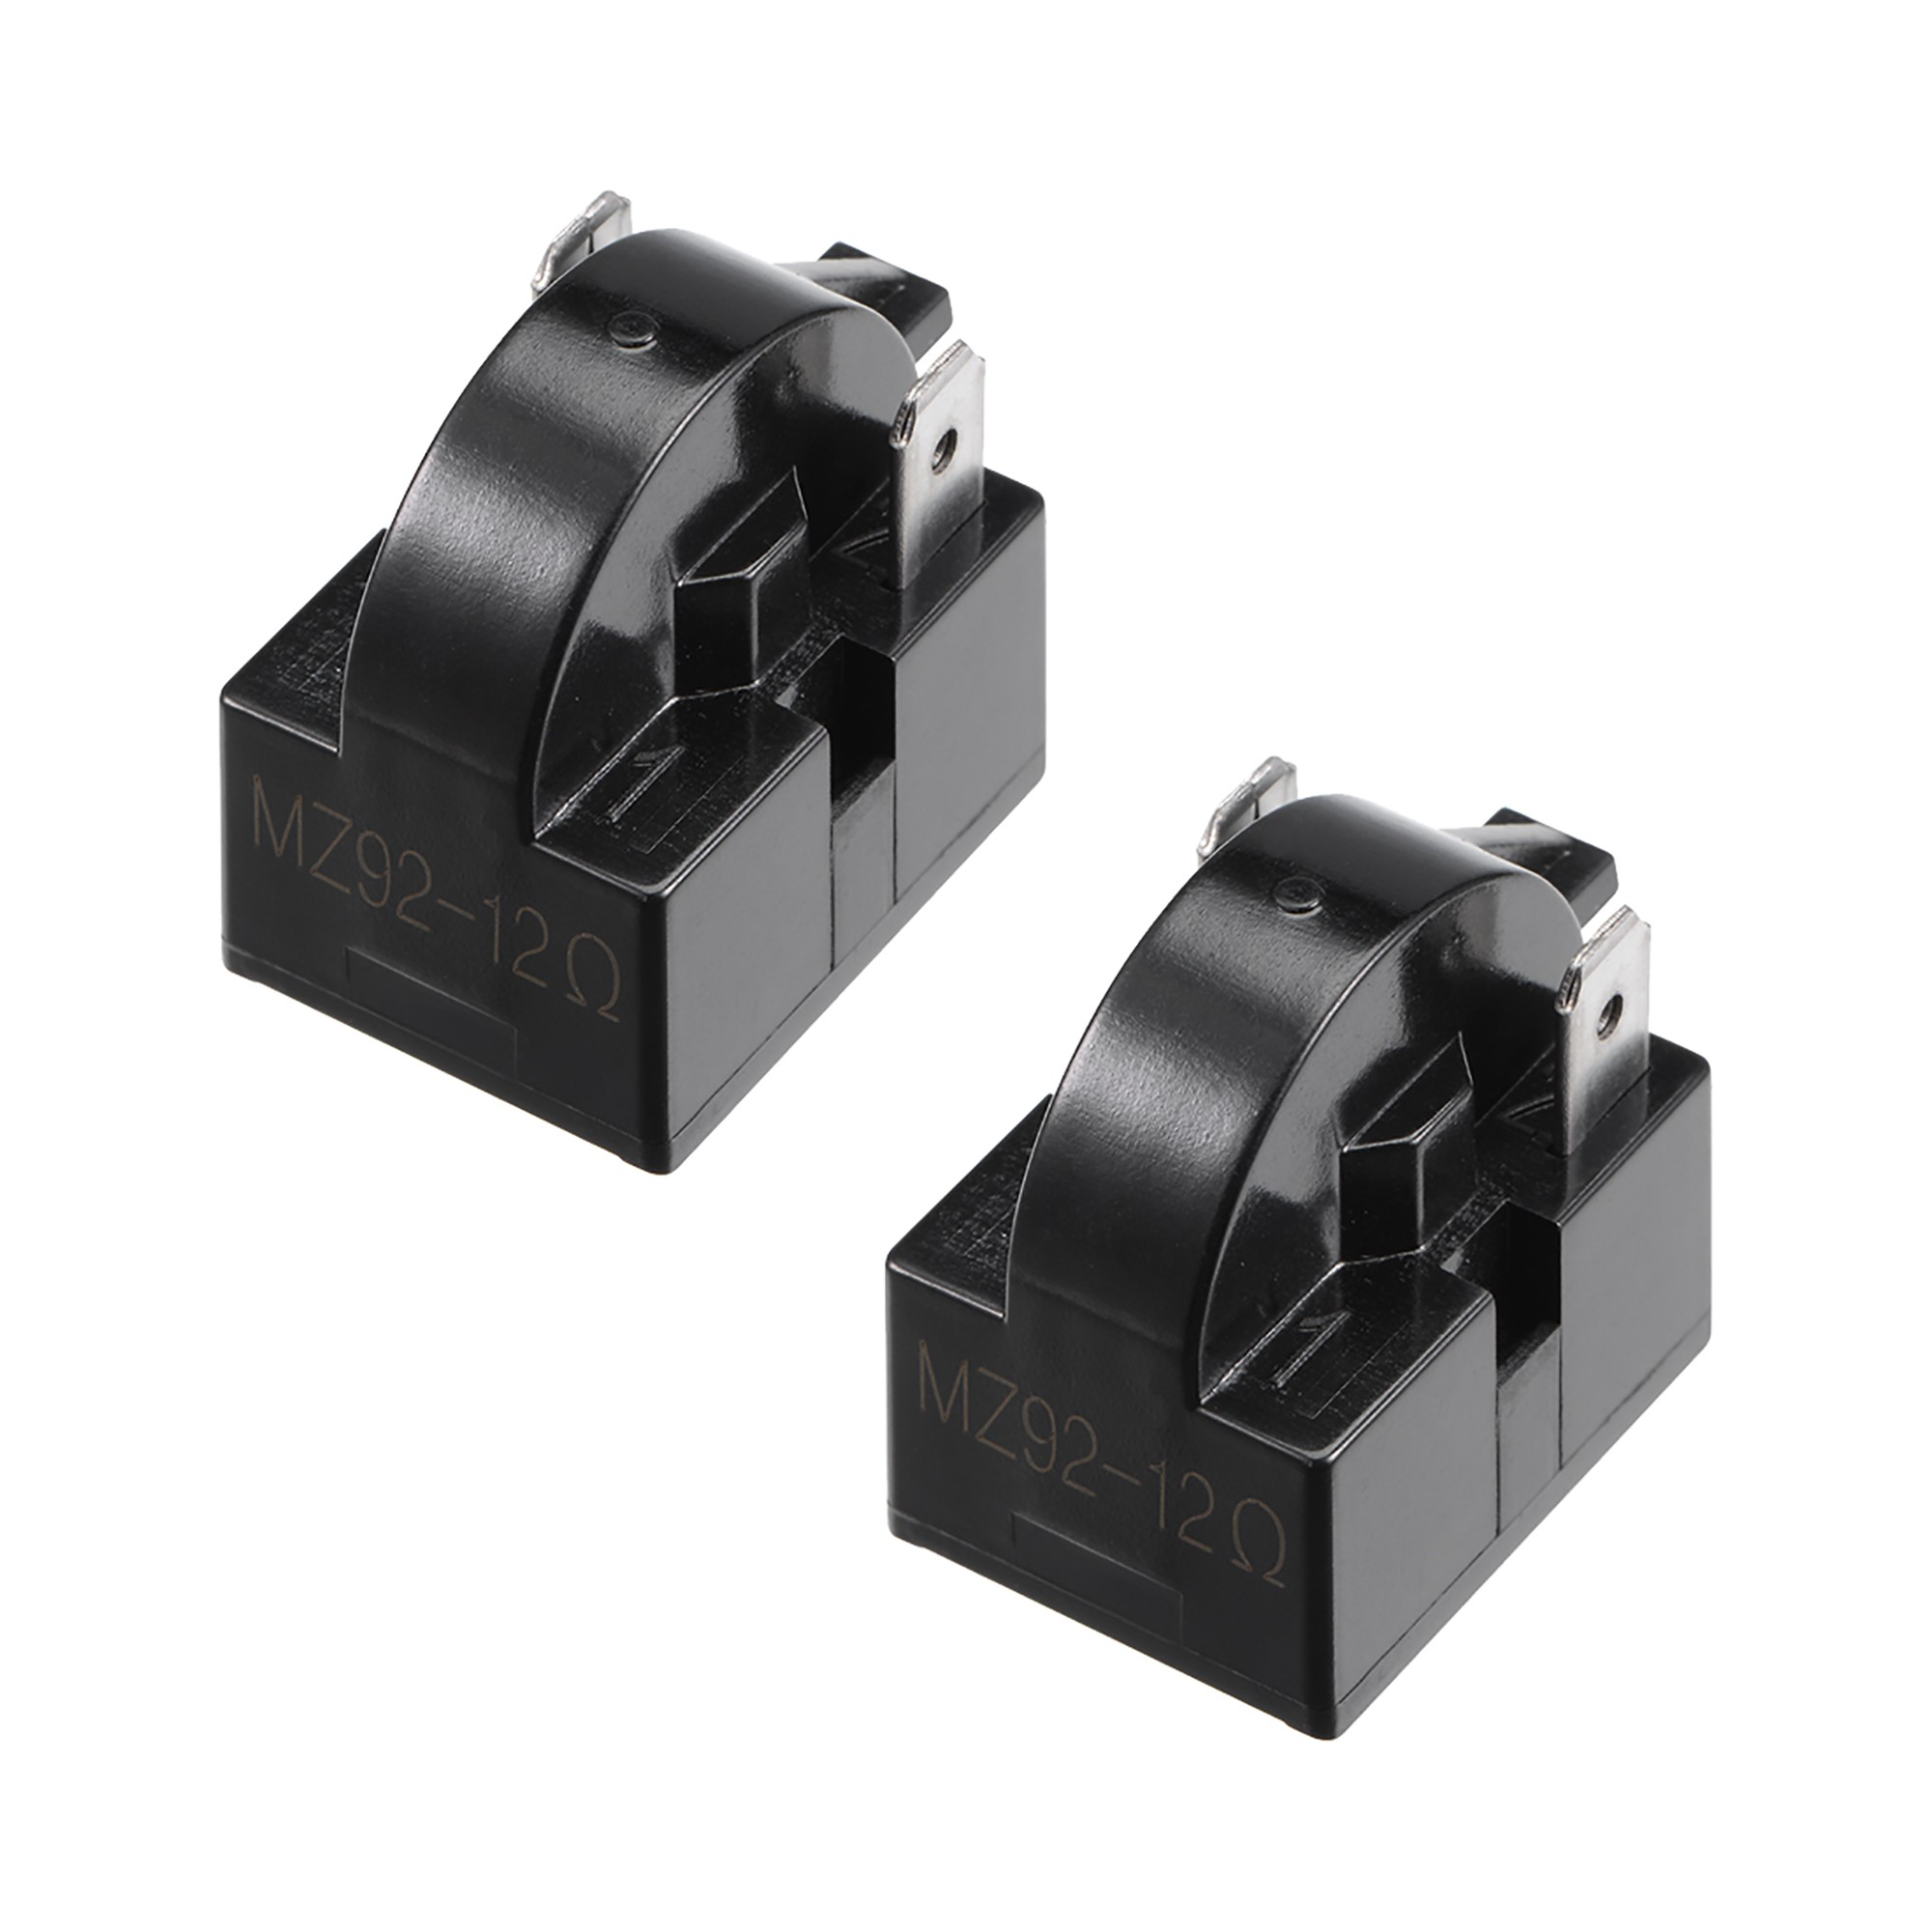 What is A 2 Pin Relay Used for 2pcs 12 Ohm 2 Pin Refrigerator Ptc Starter Relay Replacement Part Black Walmart Walmart Of What is A 2 Pin Relay Used for